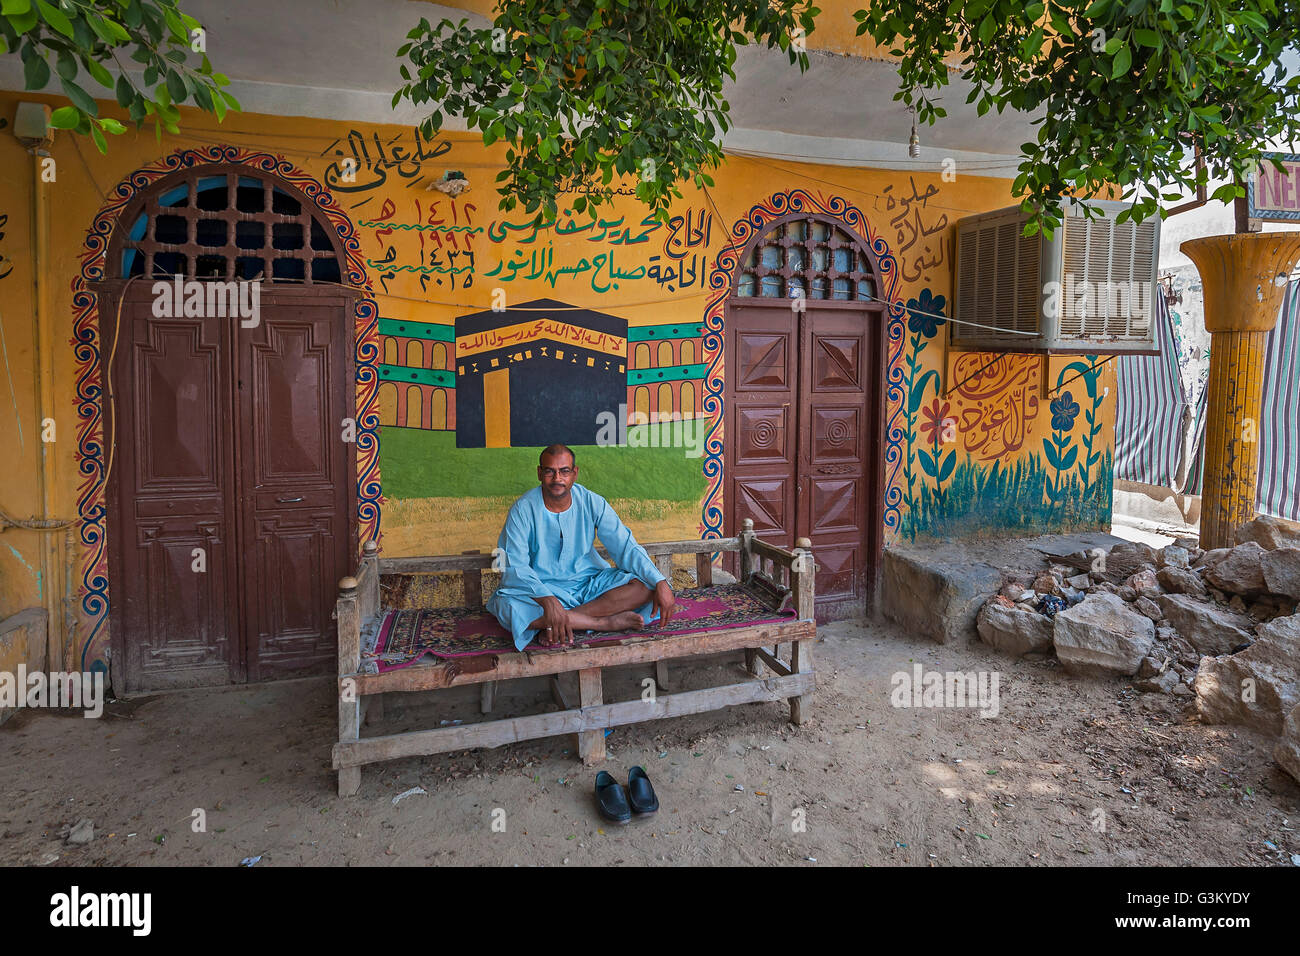 Man, Egyptian, sitting in front of his painted house, Valley of the Kings, Luxor, Egypt - Stock Image